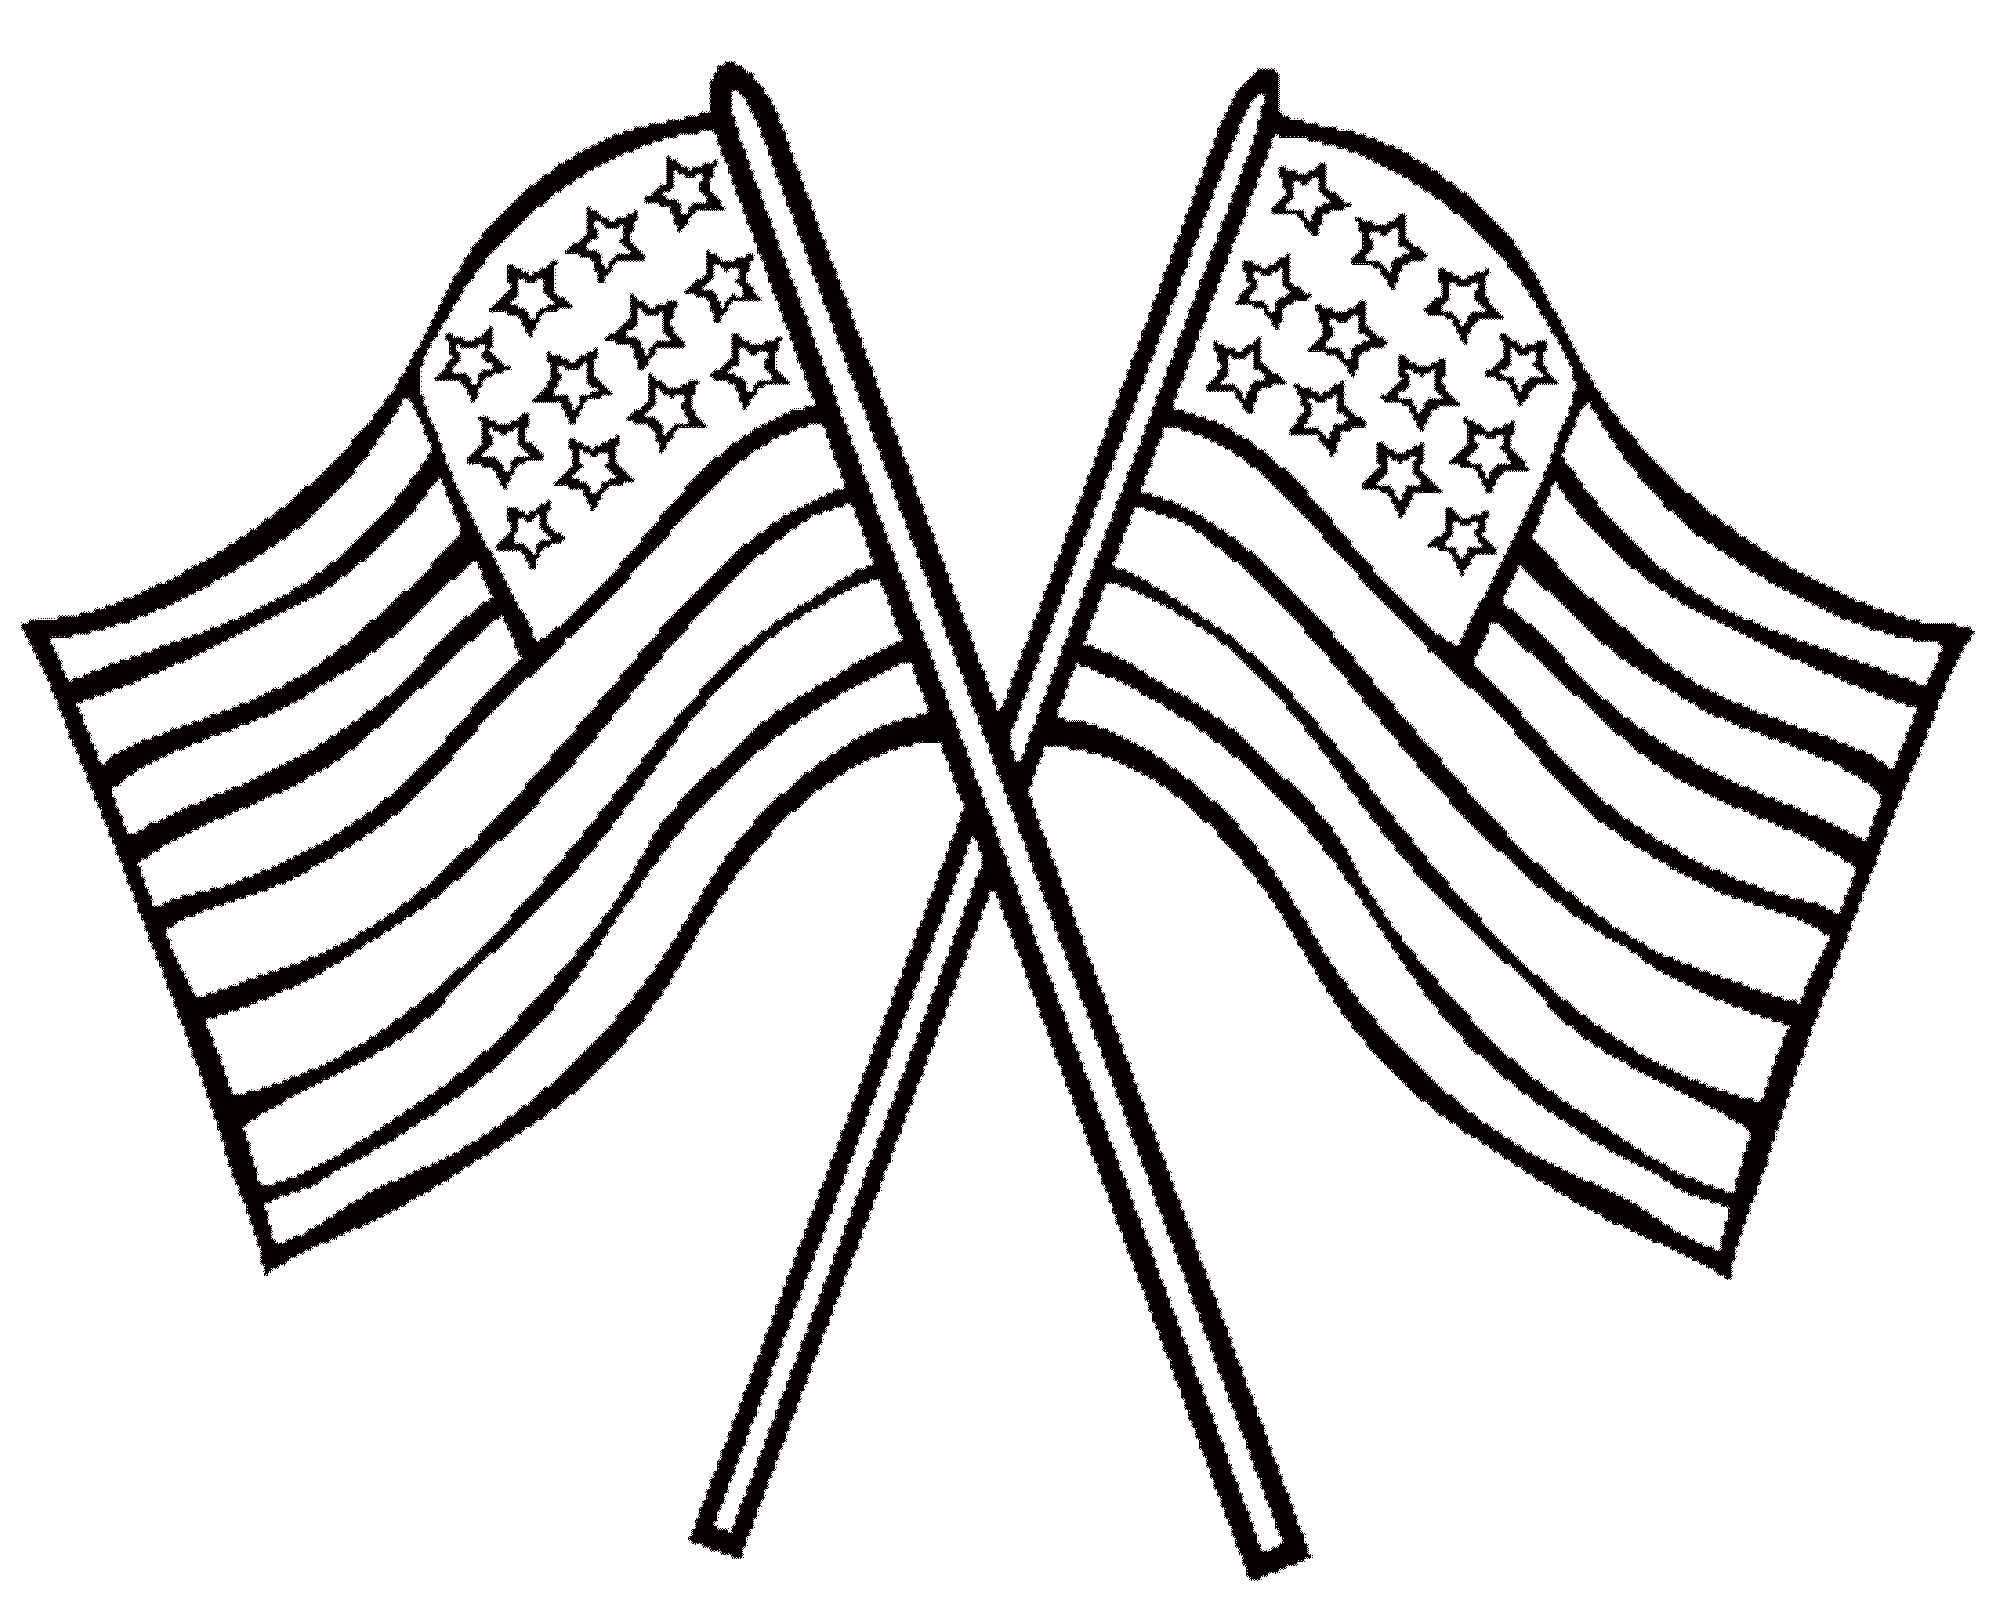 2000x1623 30 Inspirational American Flag Coloring Pages